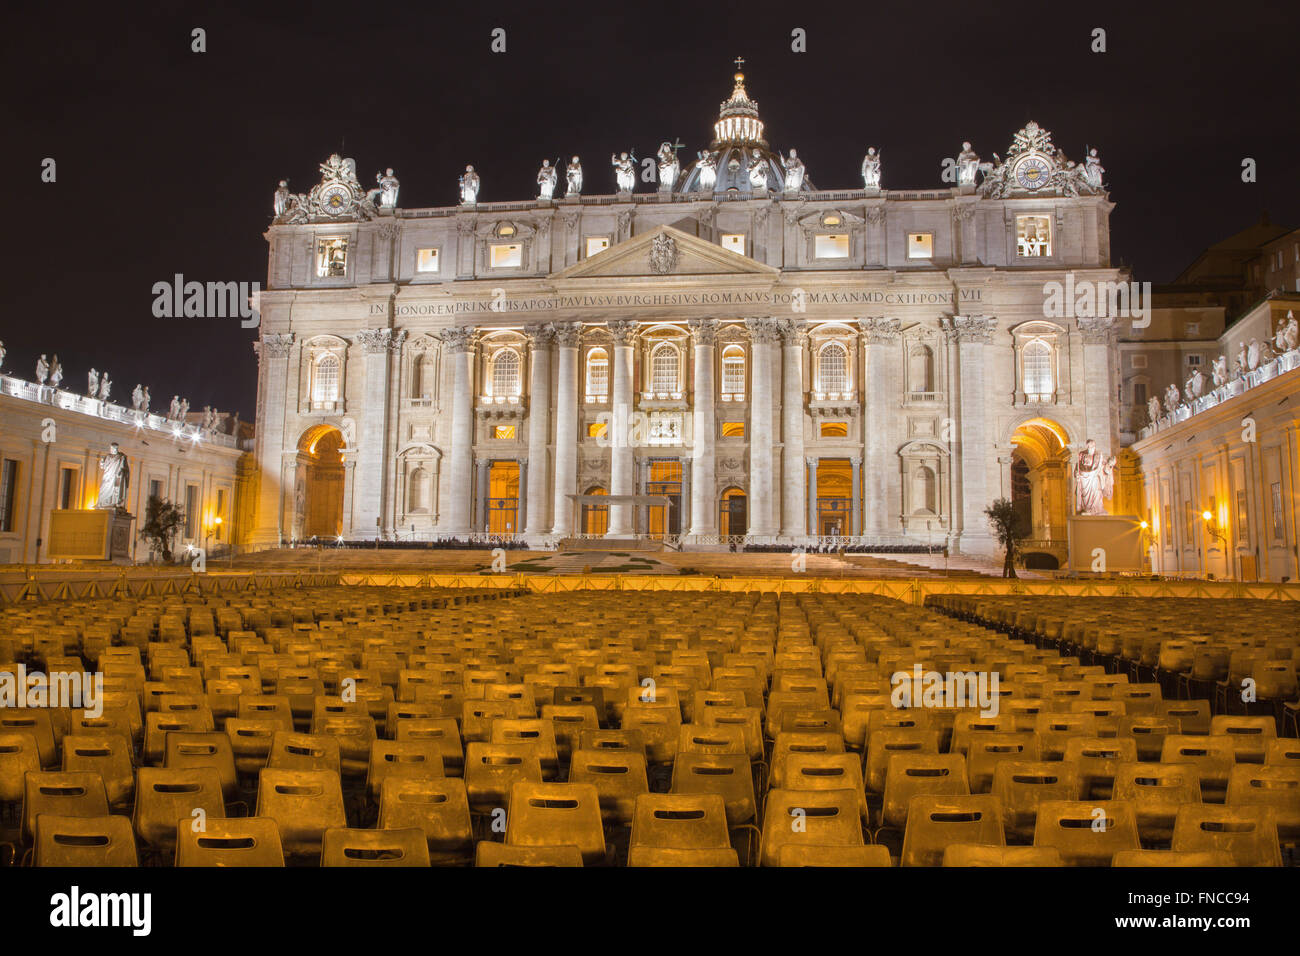 Rome - St. Peter's Basilica - 'Basilica di San Pietro' and the square at night before of Palm Sunday. - Stock Image